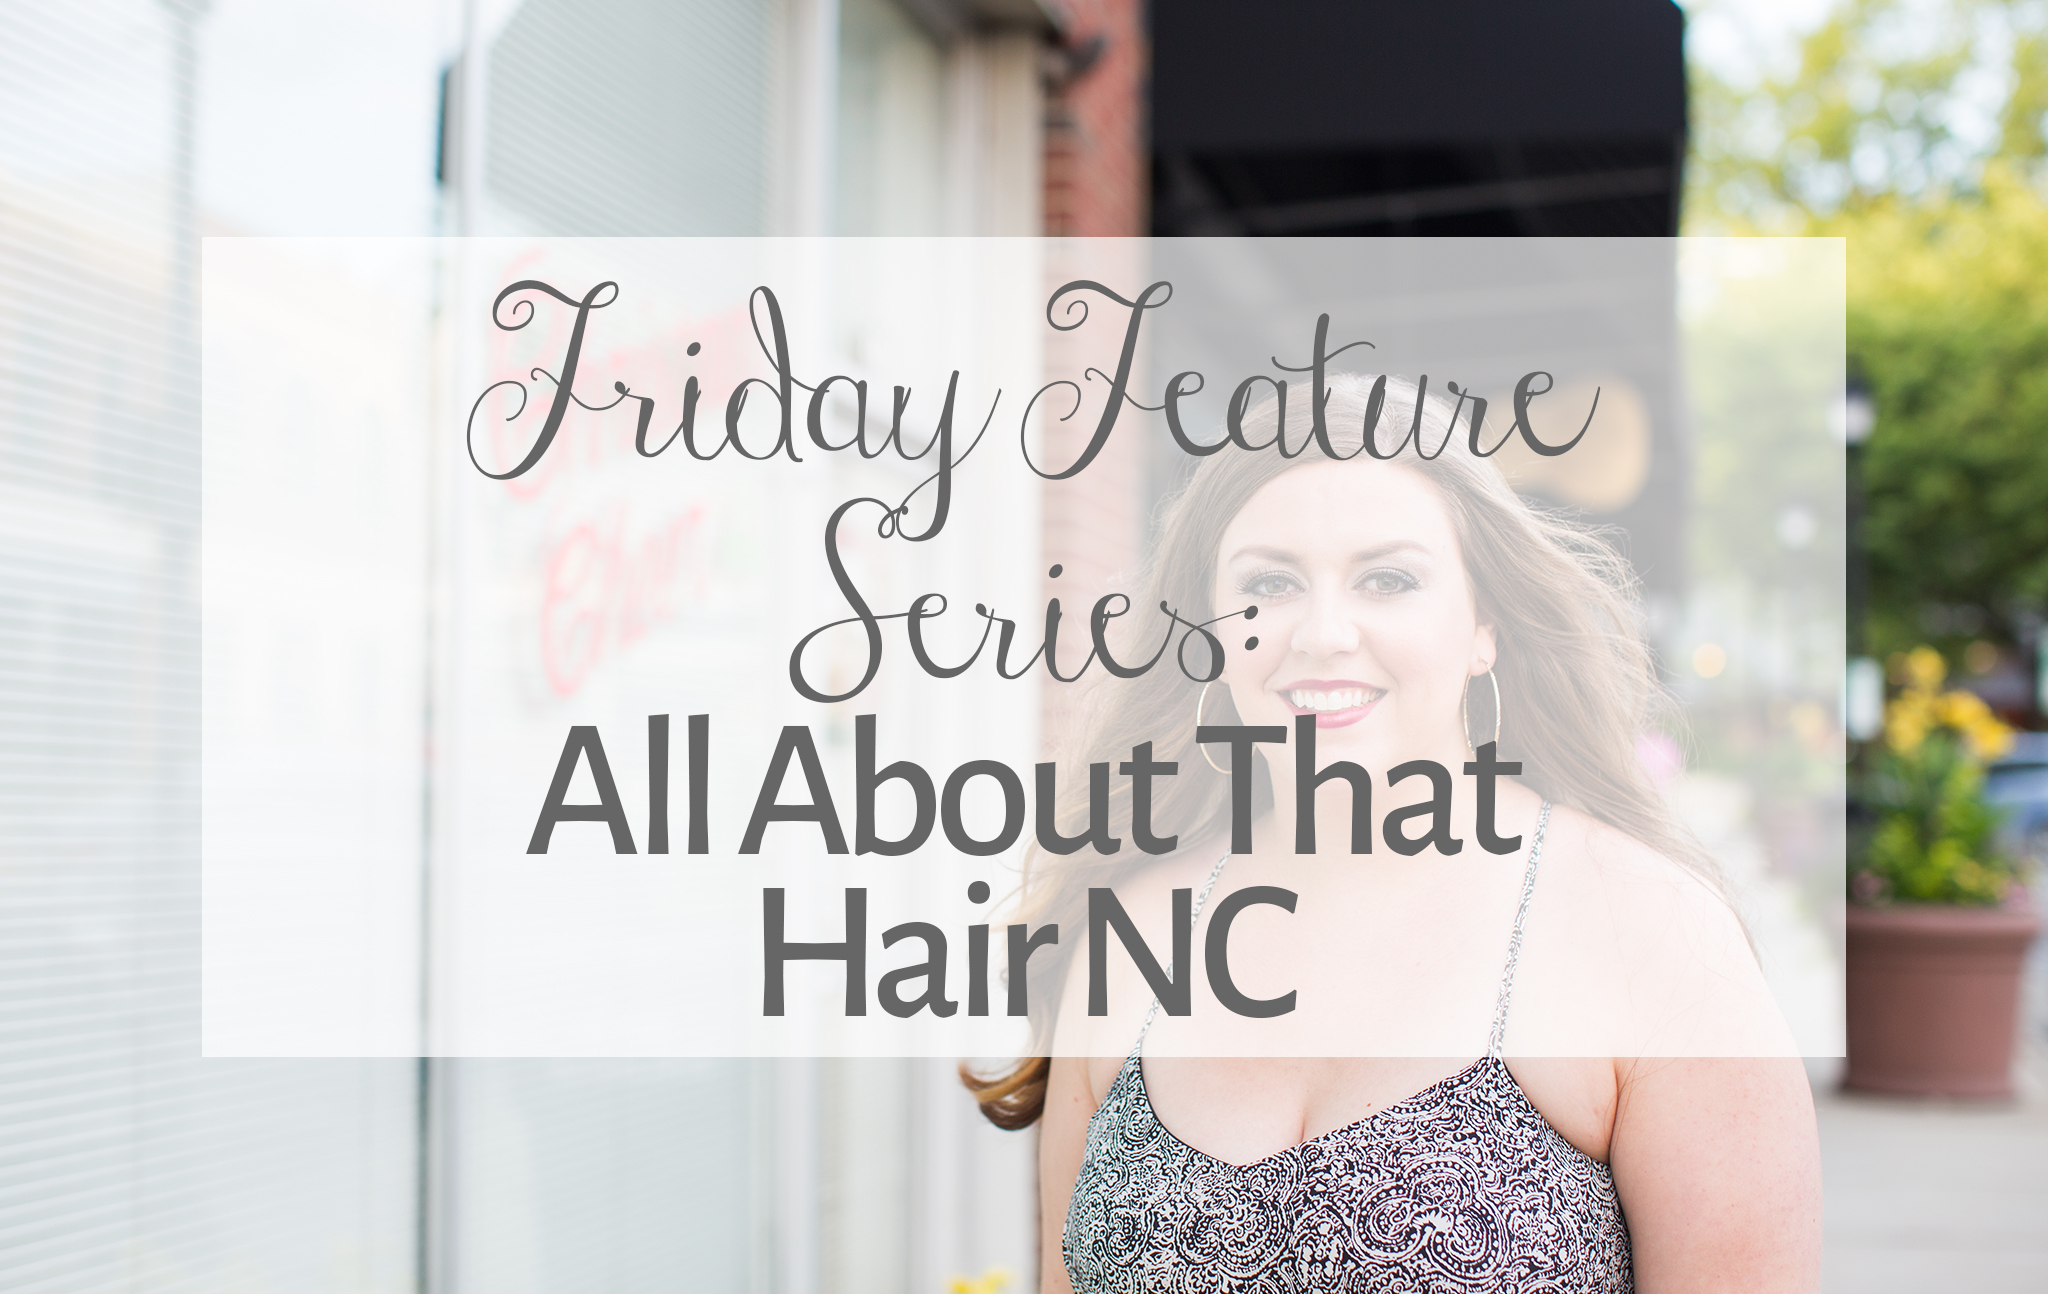 All About That Hair NC